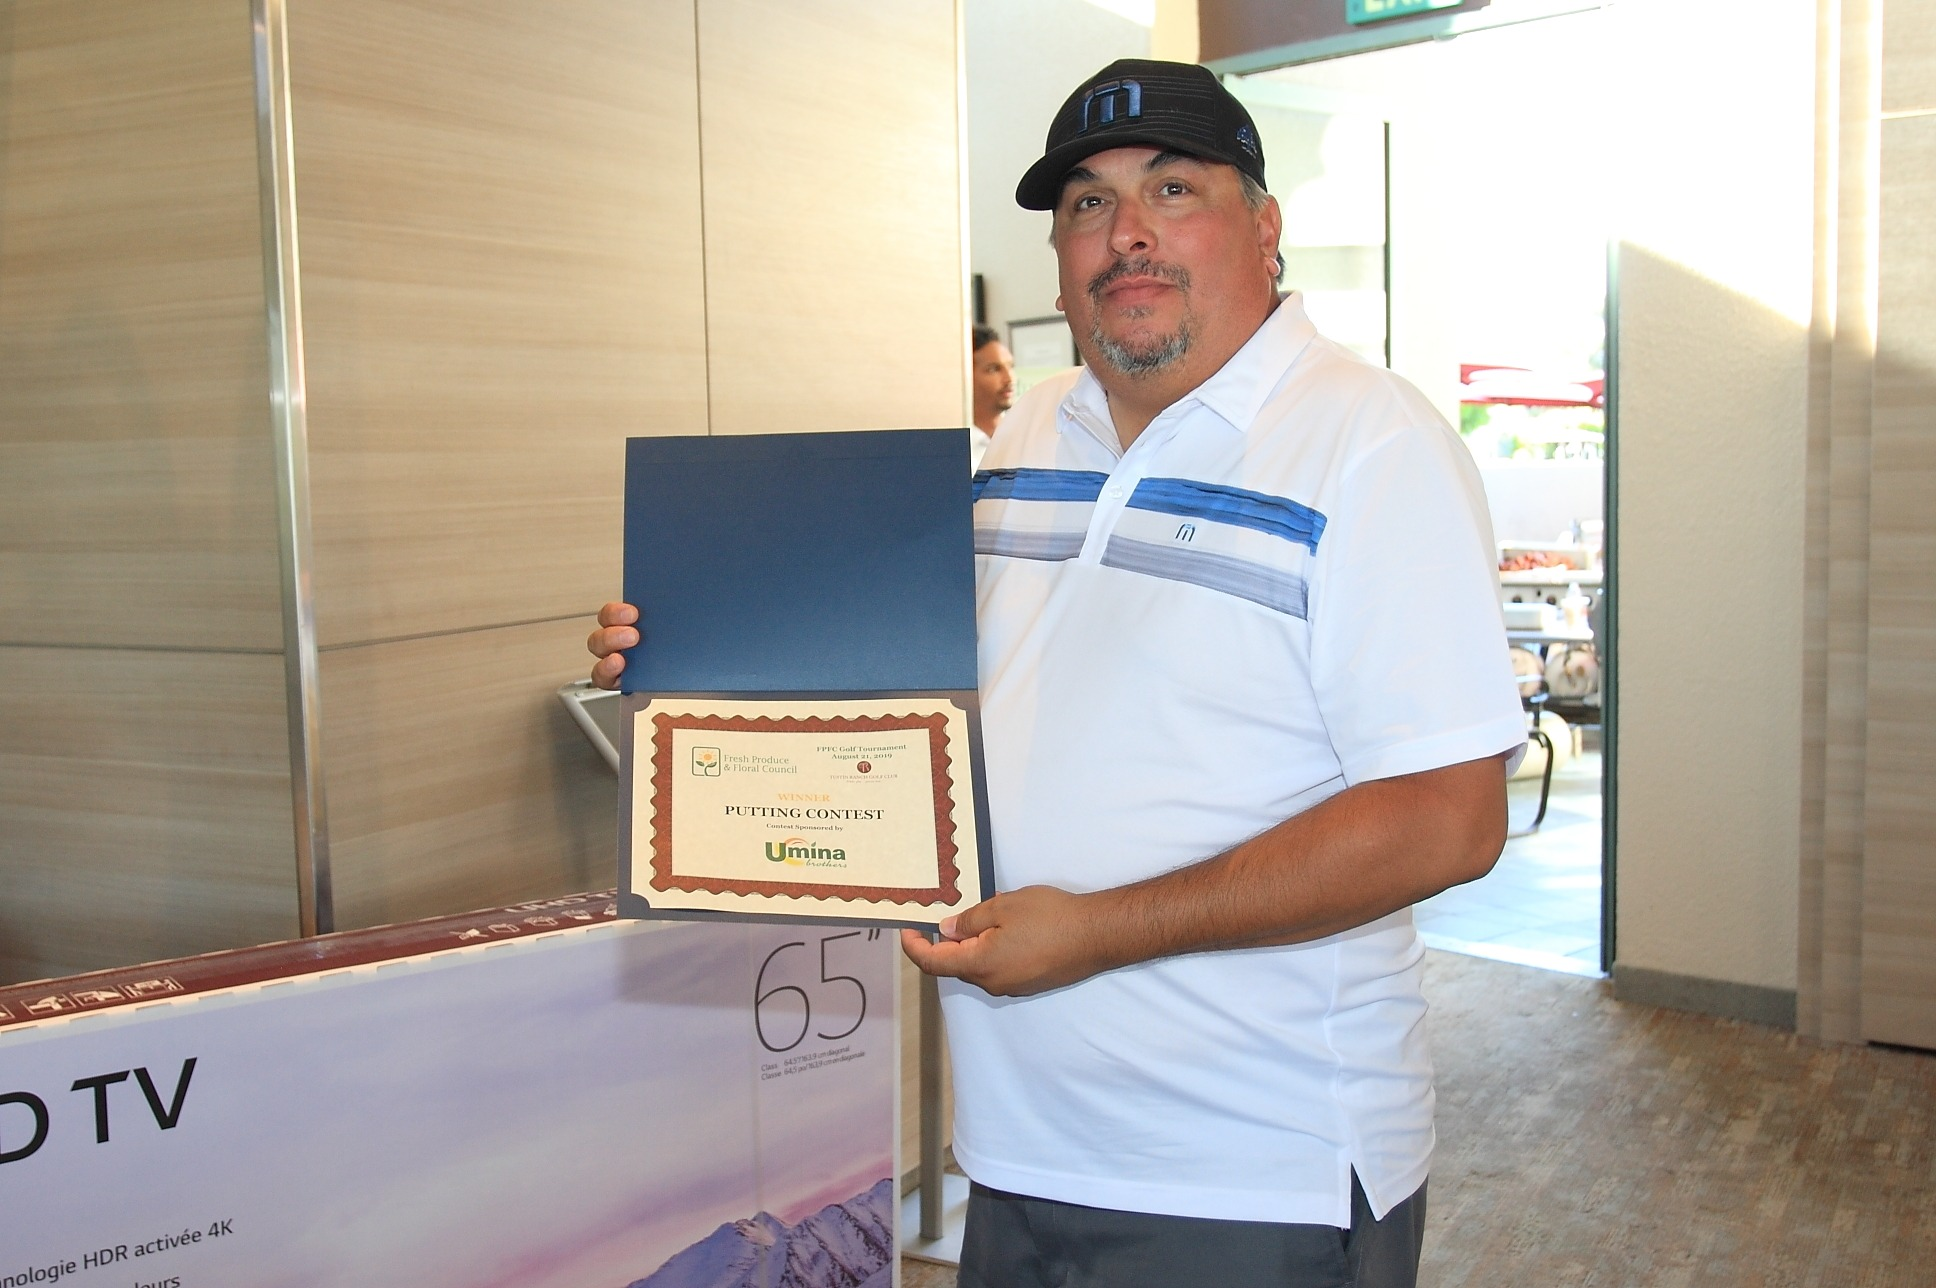 Mike Nunez of Sonora Farms wins the Putting Contest!